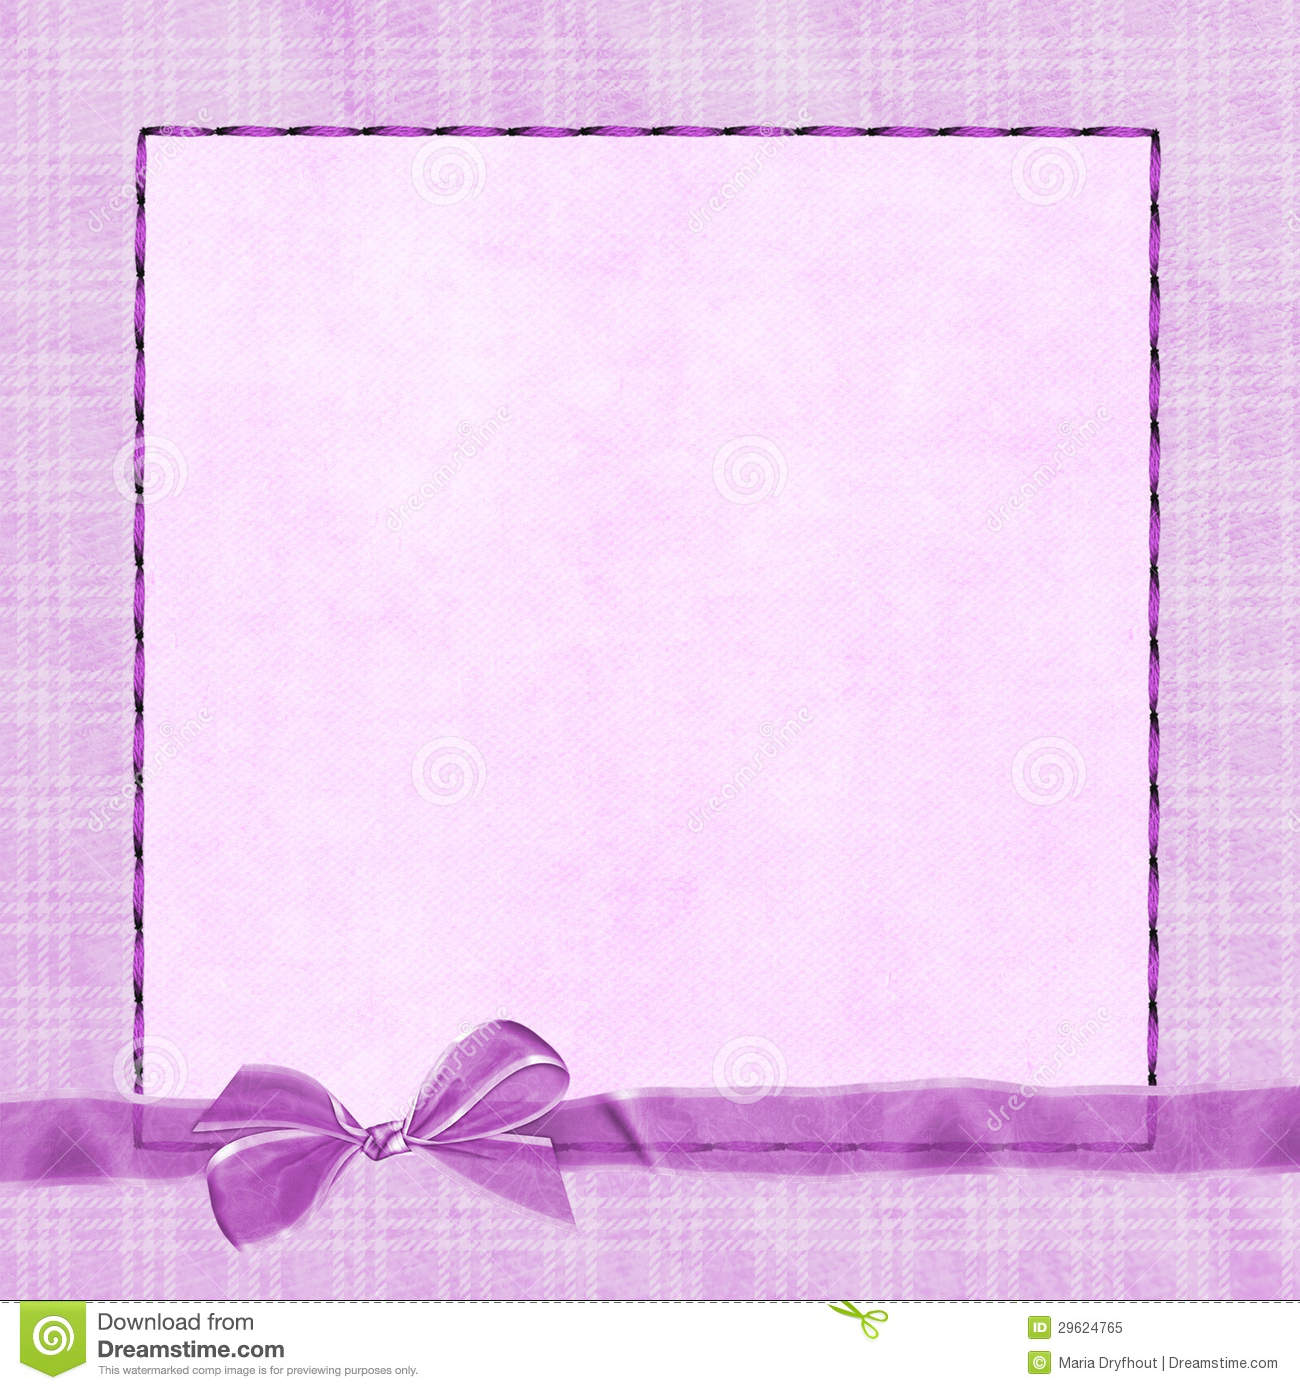 Pink Bow On Plaid Border Royalty Free Stock Photo - Image ...